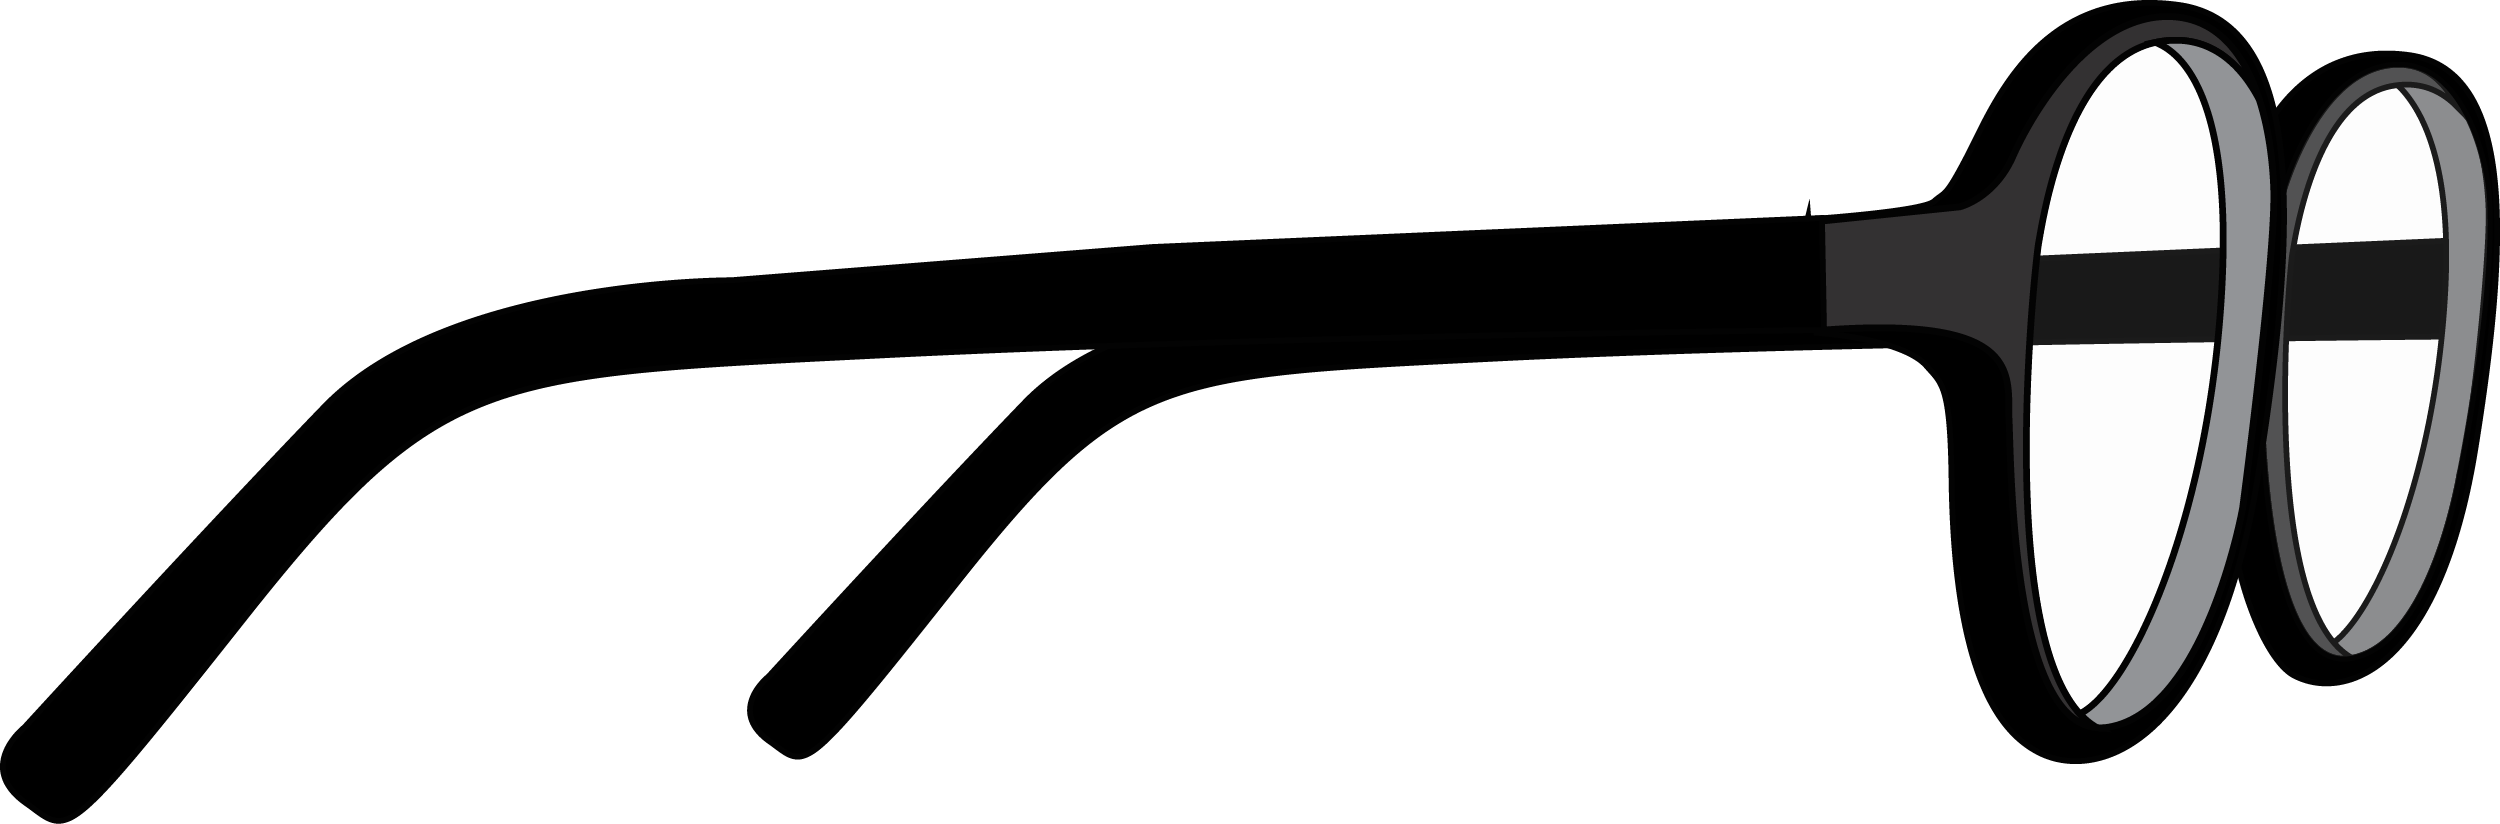 Side-view Glasses PNG